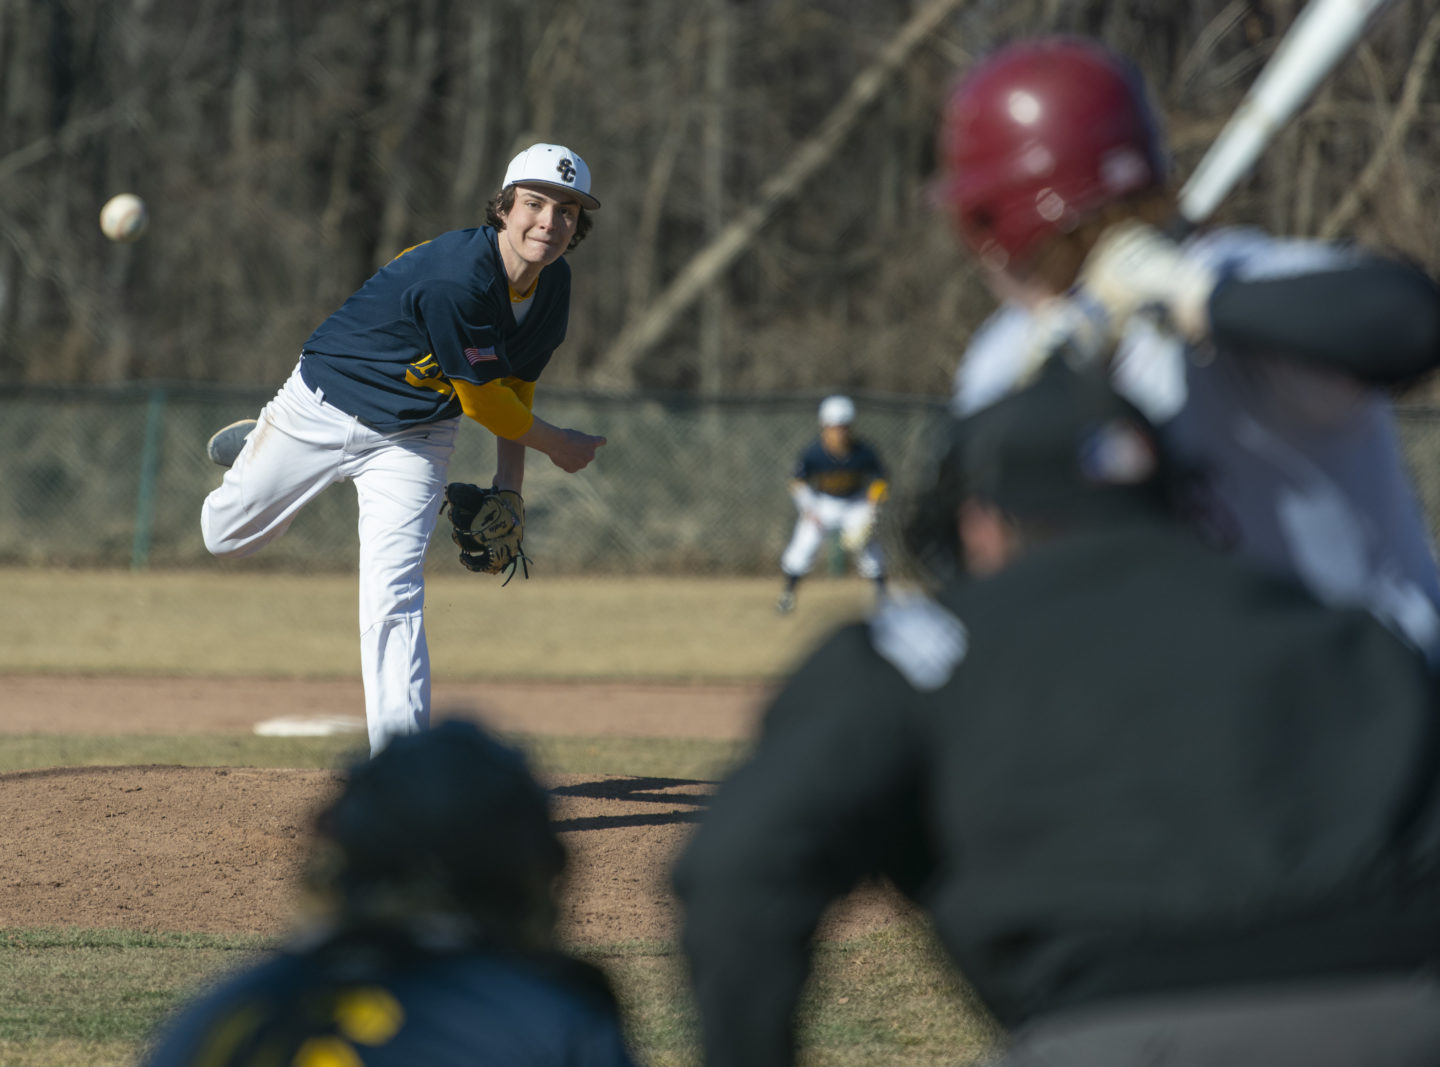 Pitcher pitches the ball